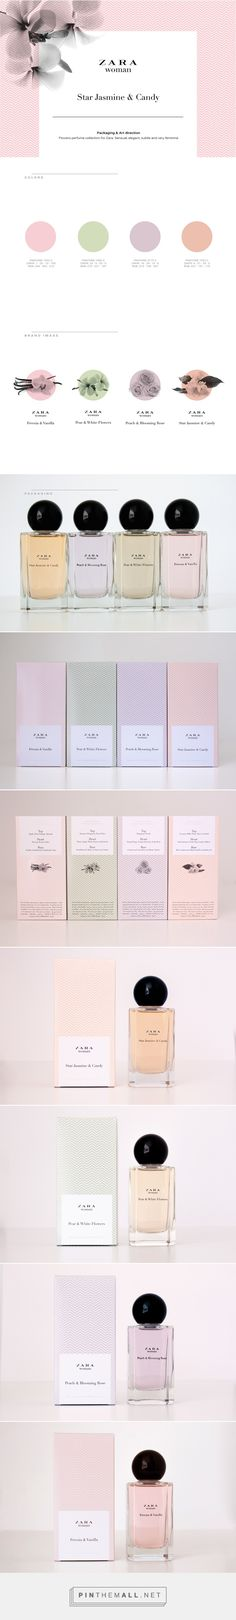 Art direction, branding and packaging for Zara Star Jasmine & Candy on Behance by Isabel de Peque Madrid, Spain curated by Packaging Diva PD. Packaging & Art direction Flowers perfume collection for Zara.